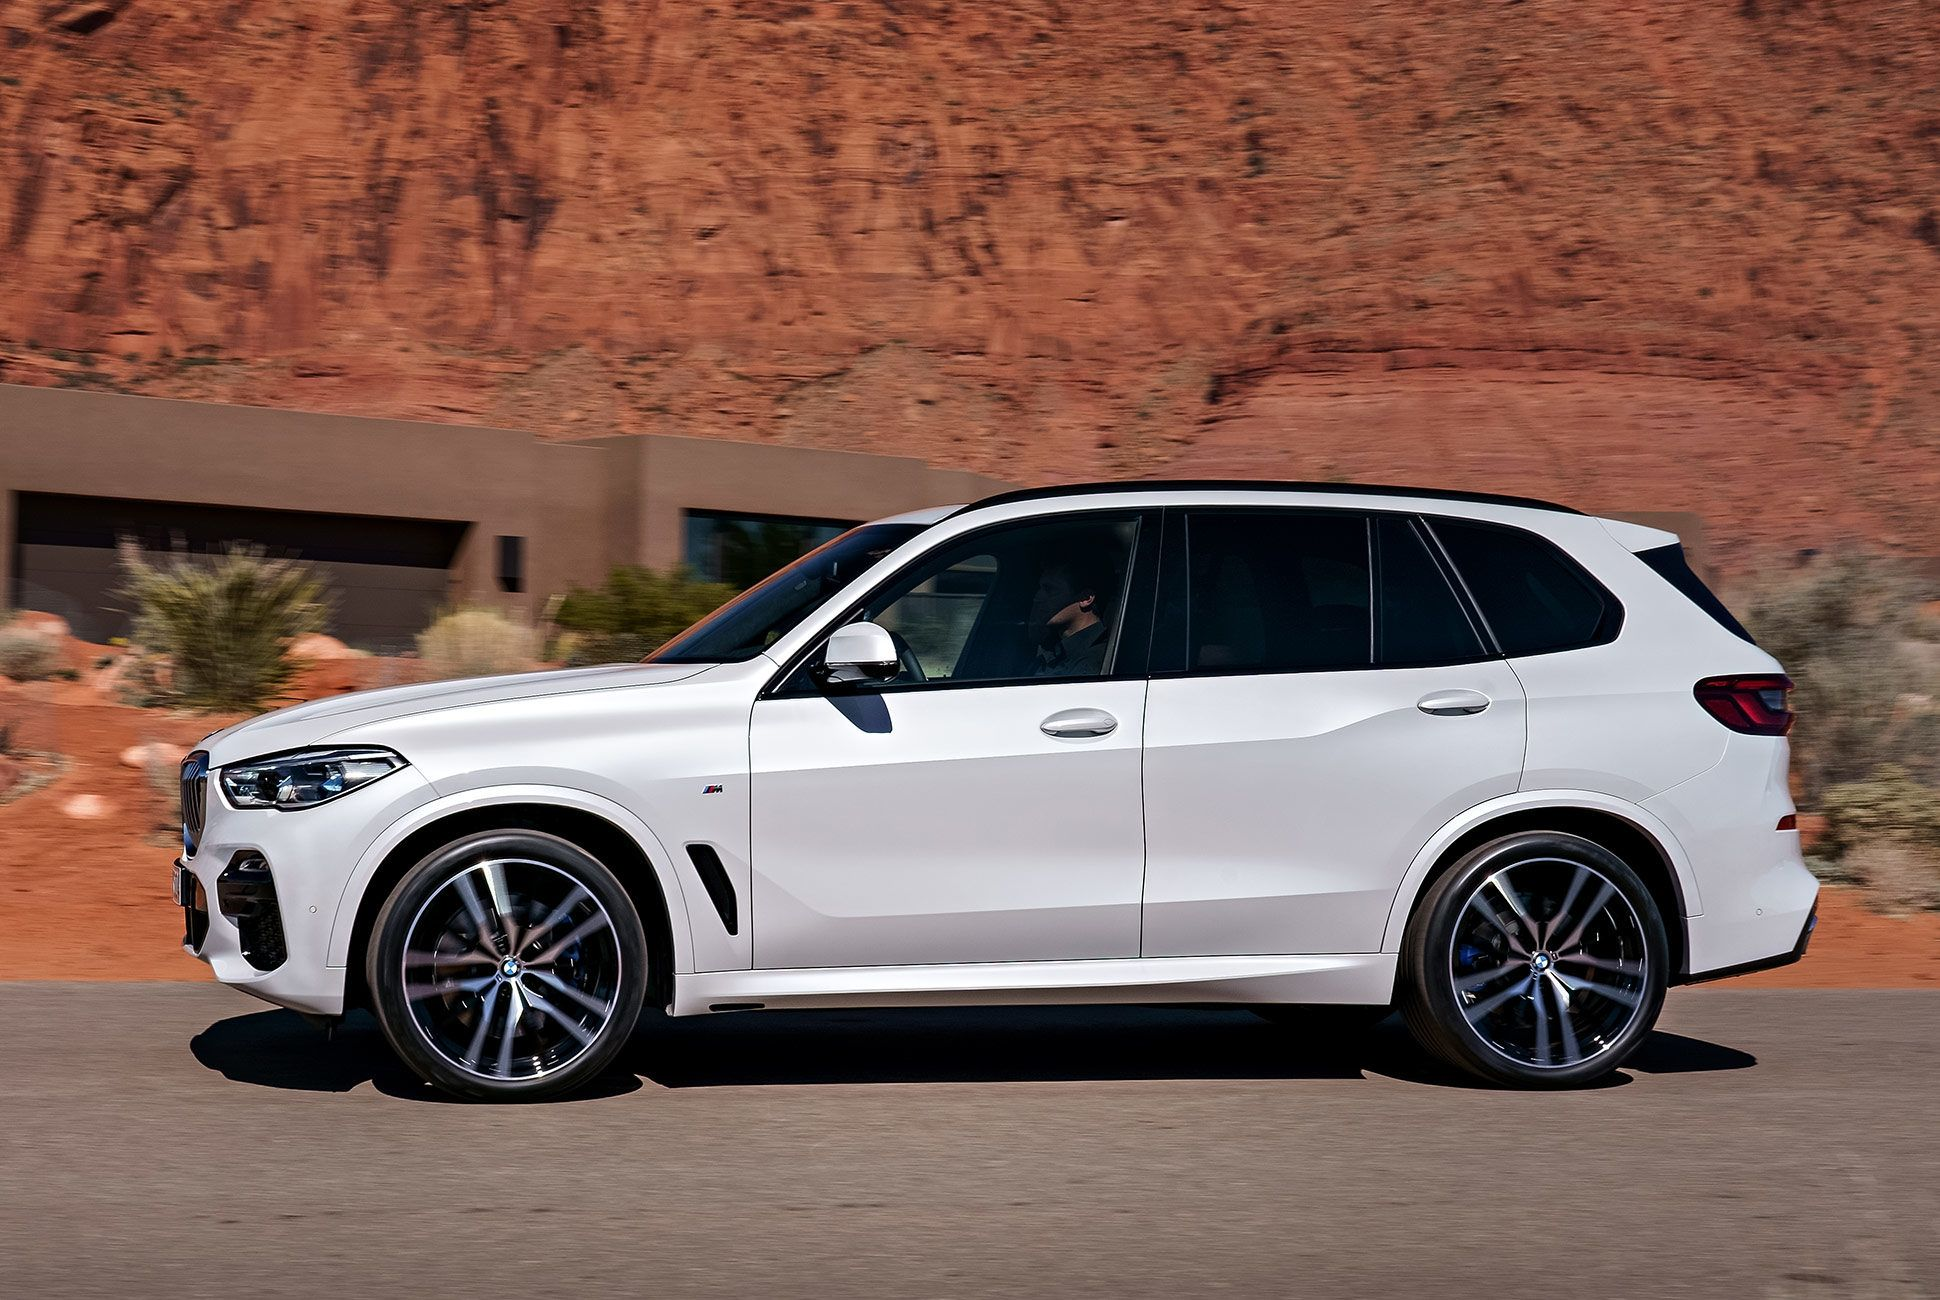 The All New 2019 Bmw X5 Gets An Off Road Performance Package Bmw Suv Bmw X5 Bmw